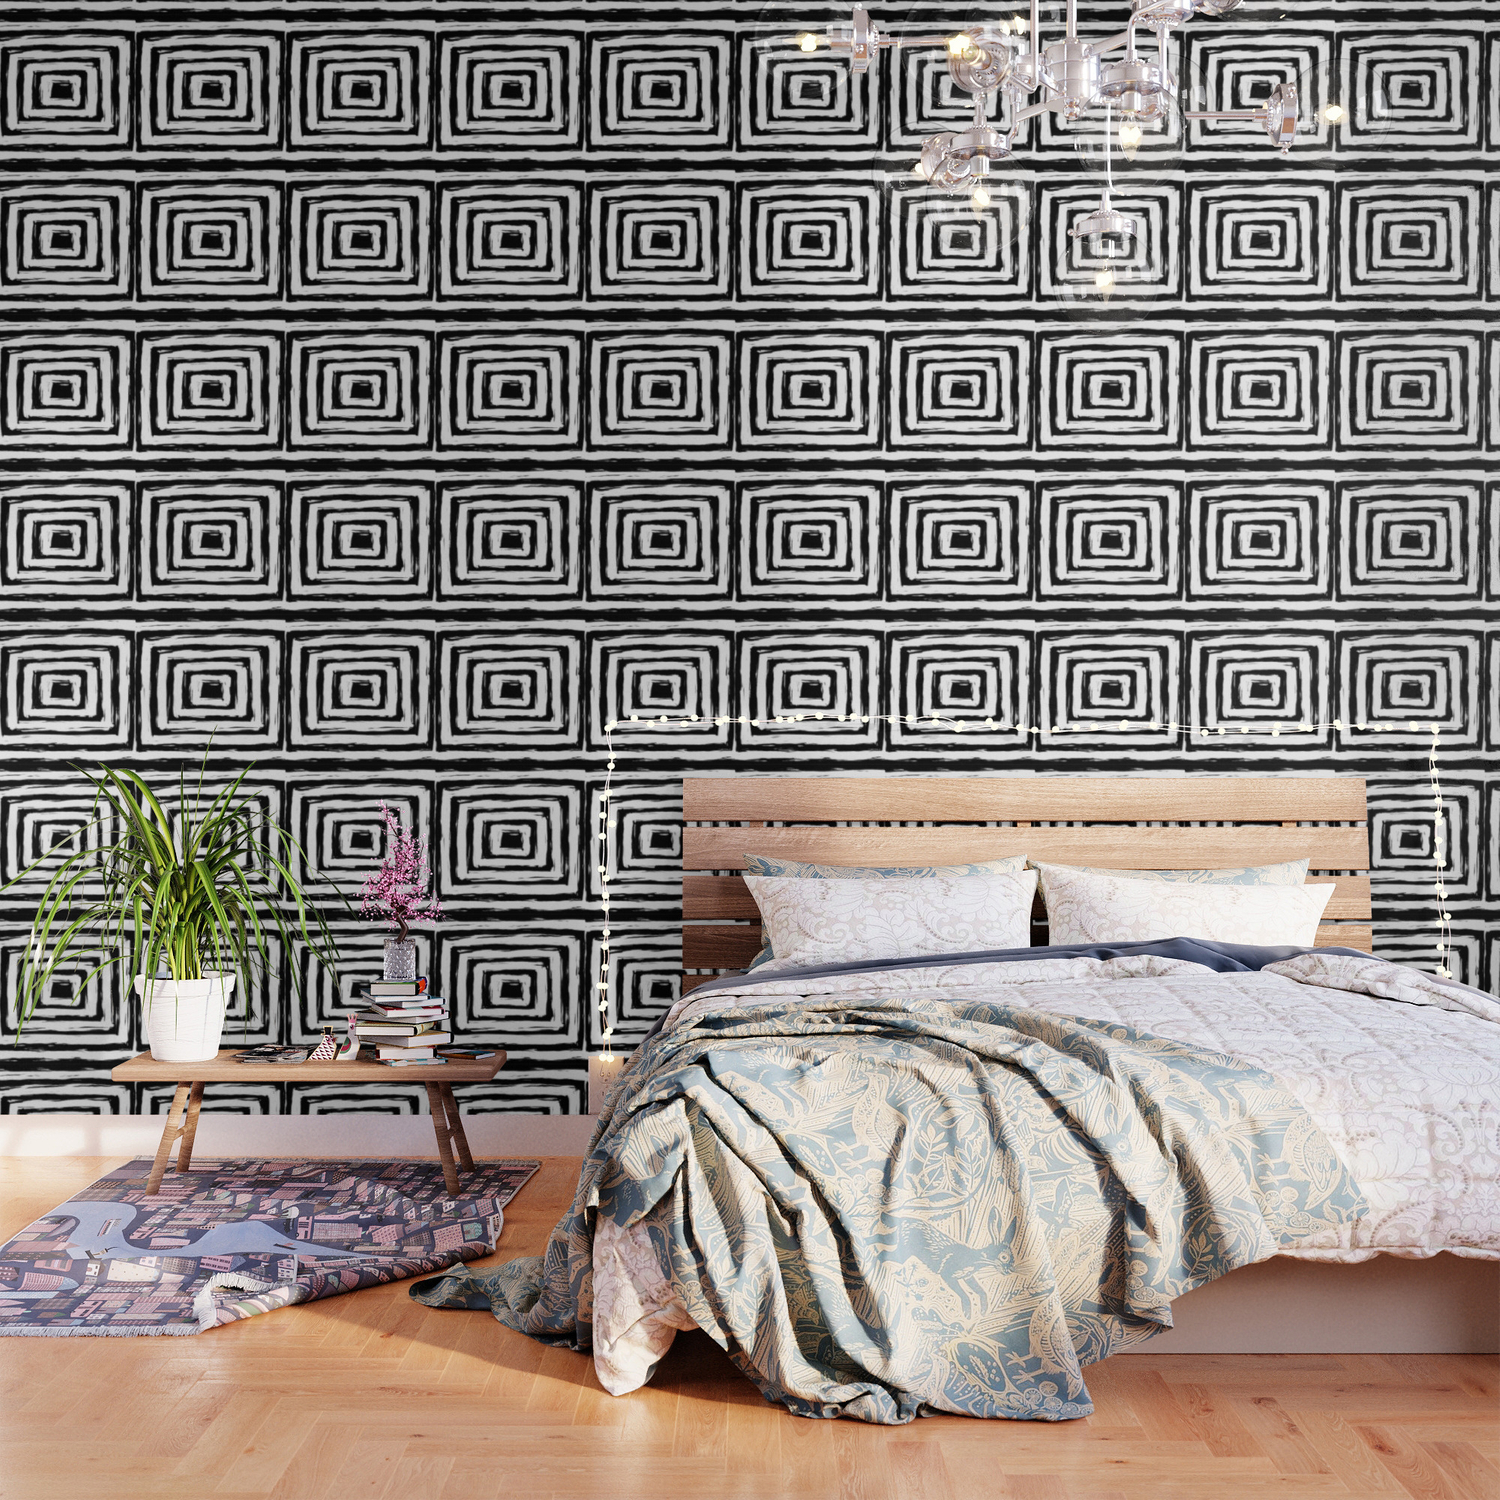 Minimal Black And White Square Rectangle Pattern Wallpaper By